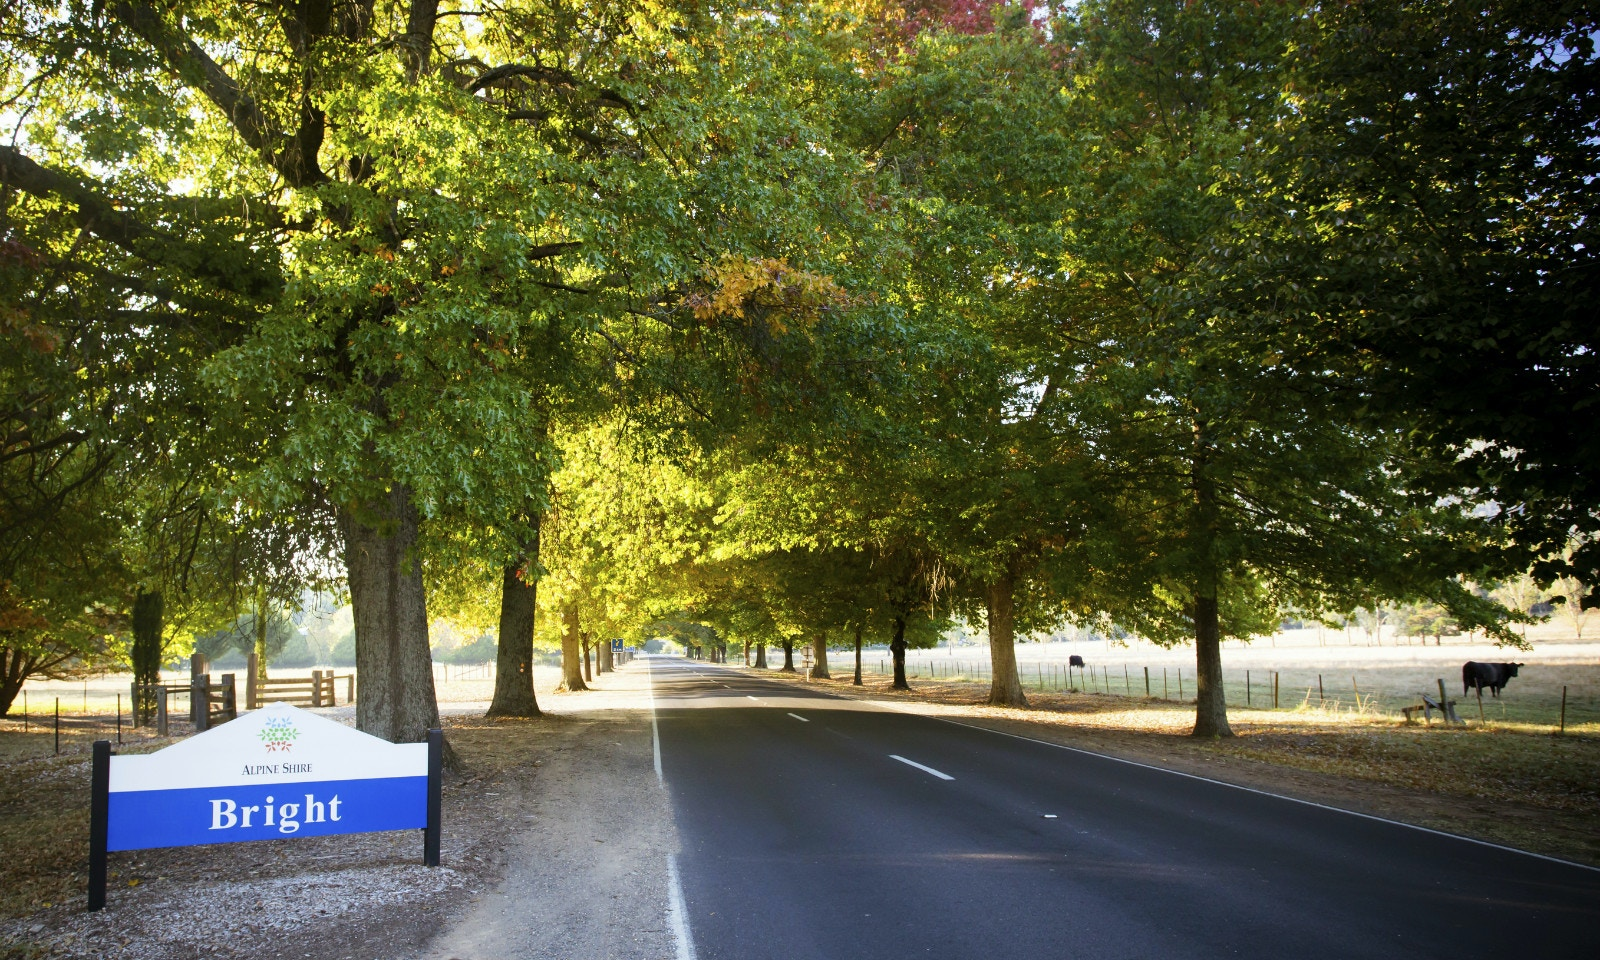 GoSeeAustralia takes the Great Alpine Road to Bright in VIC's stunning north-east